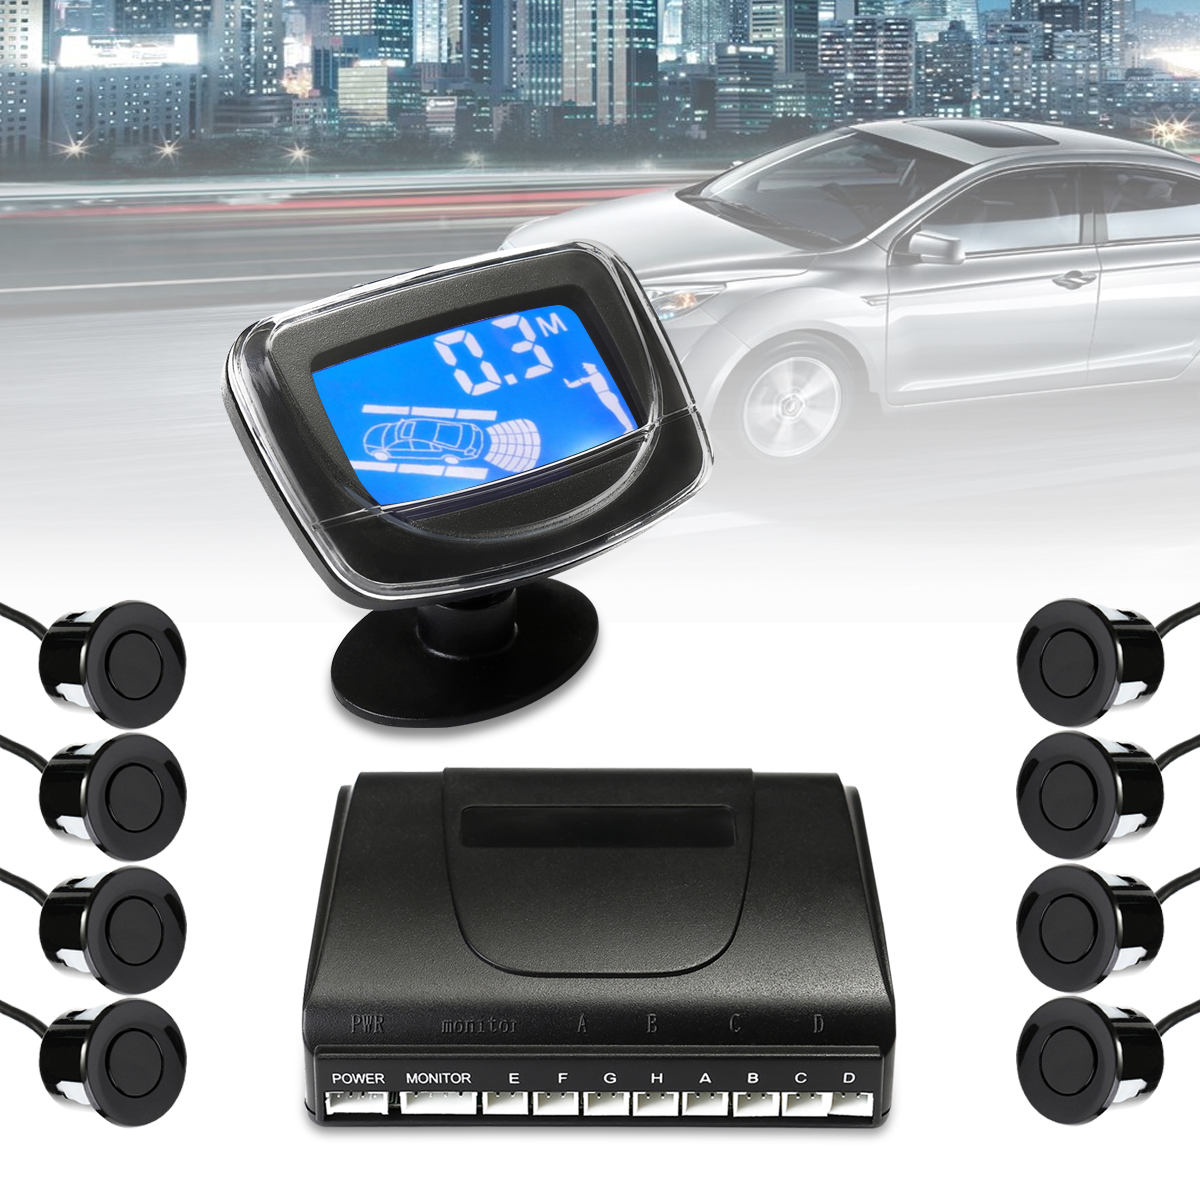 8 Parking Sensors Car Rear View Reverse Backup Front  LCD car rear view parking sensor  Display Radar System Tools Accessories